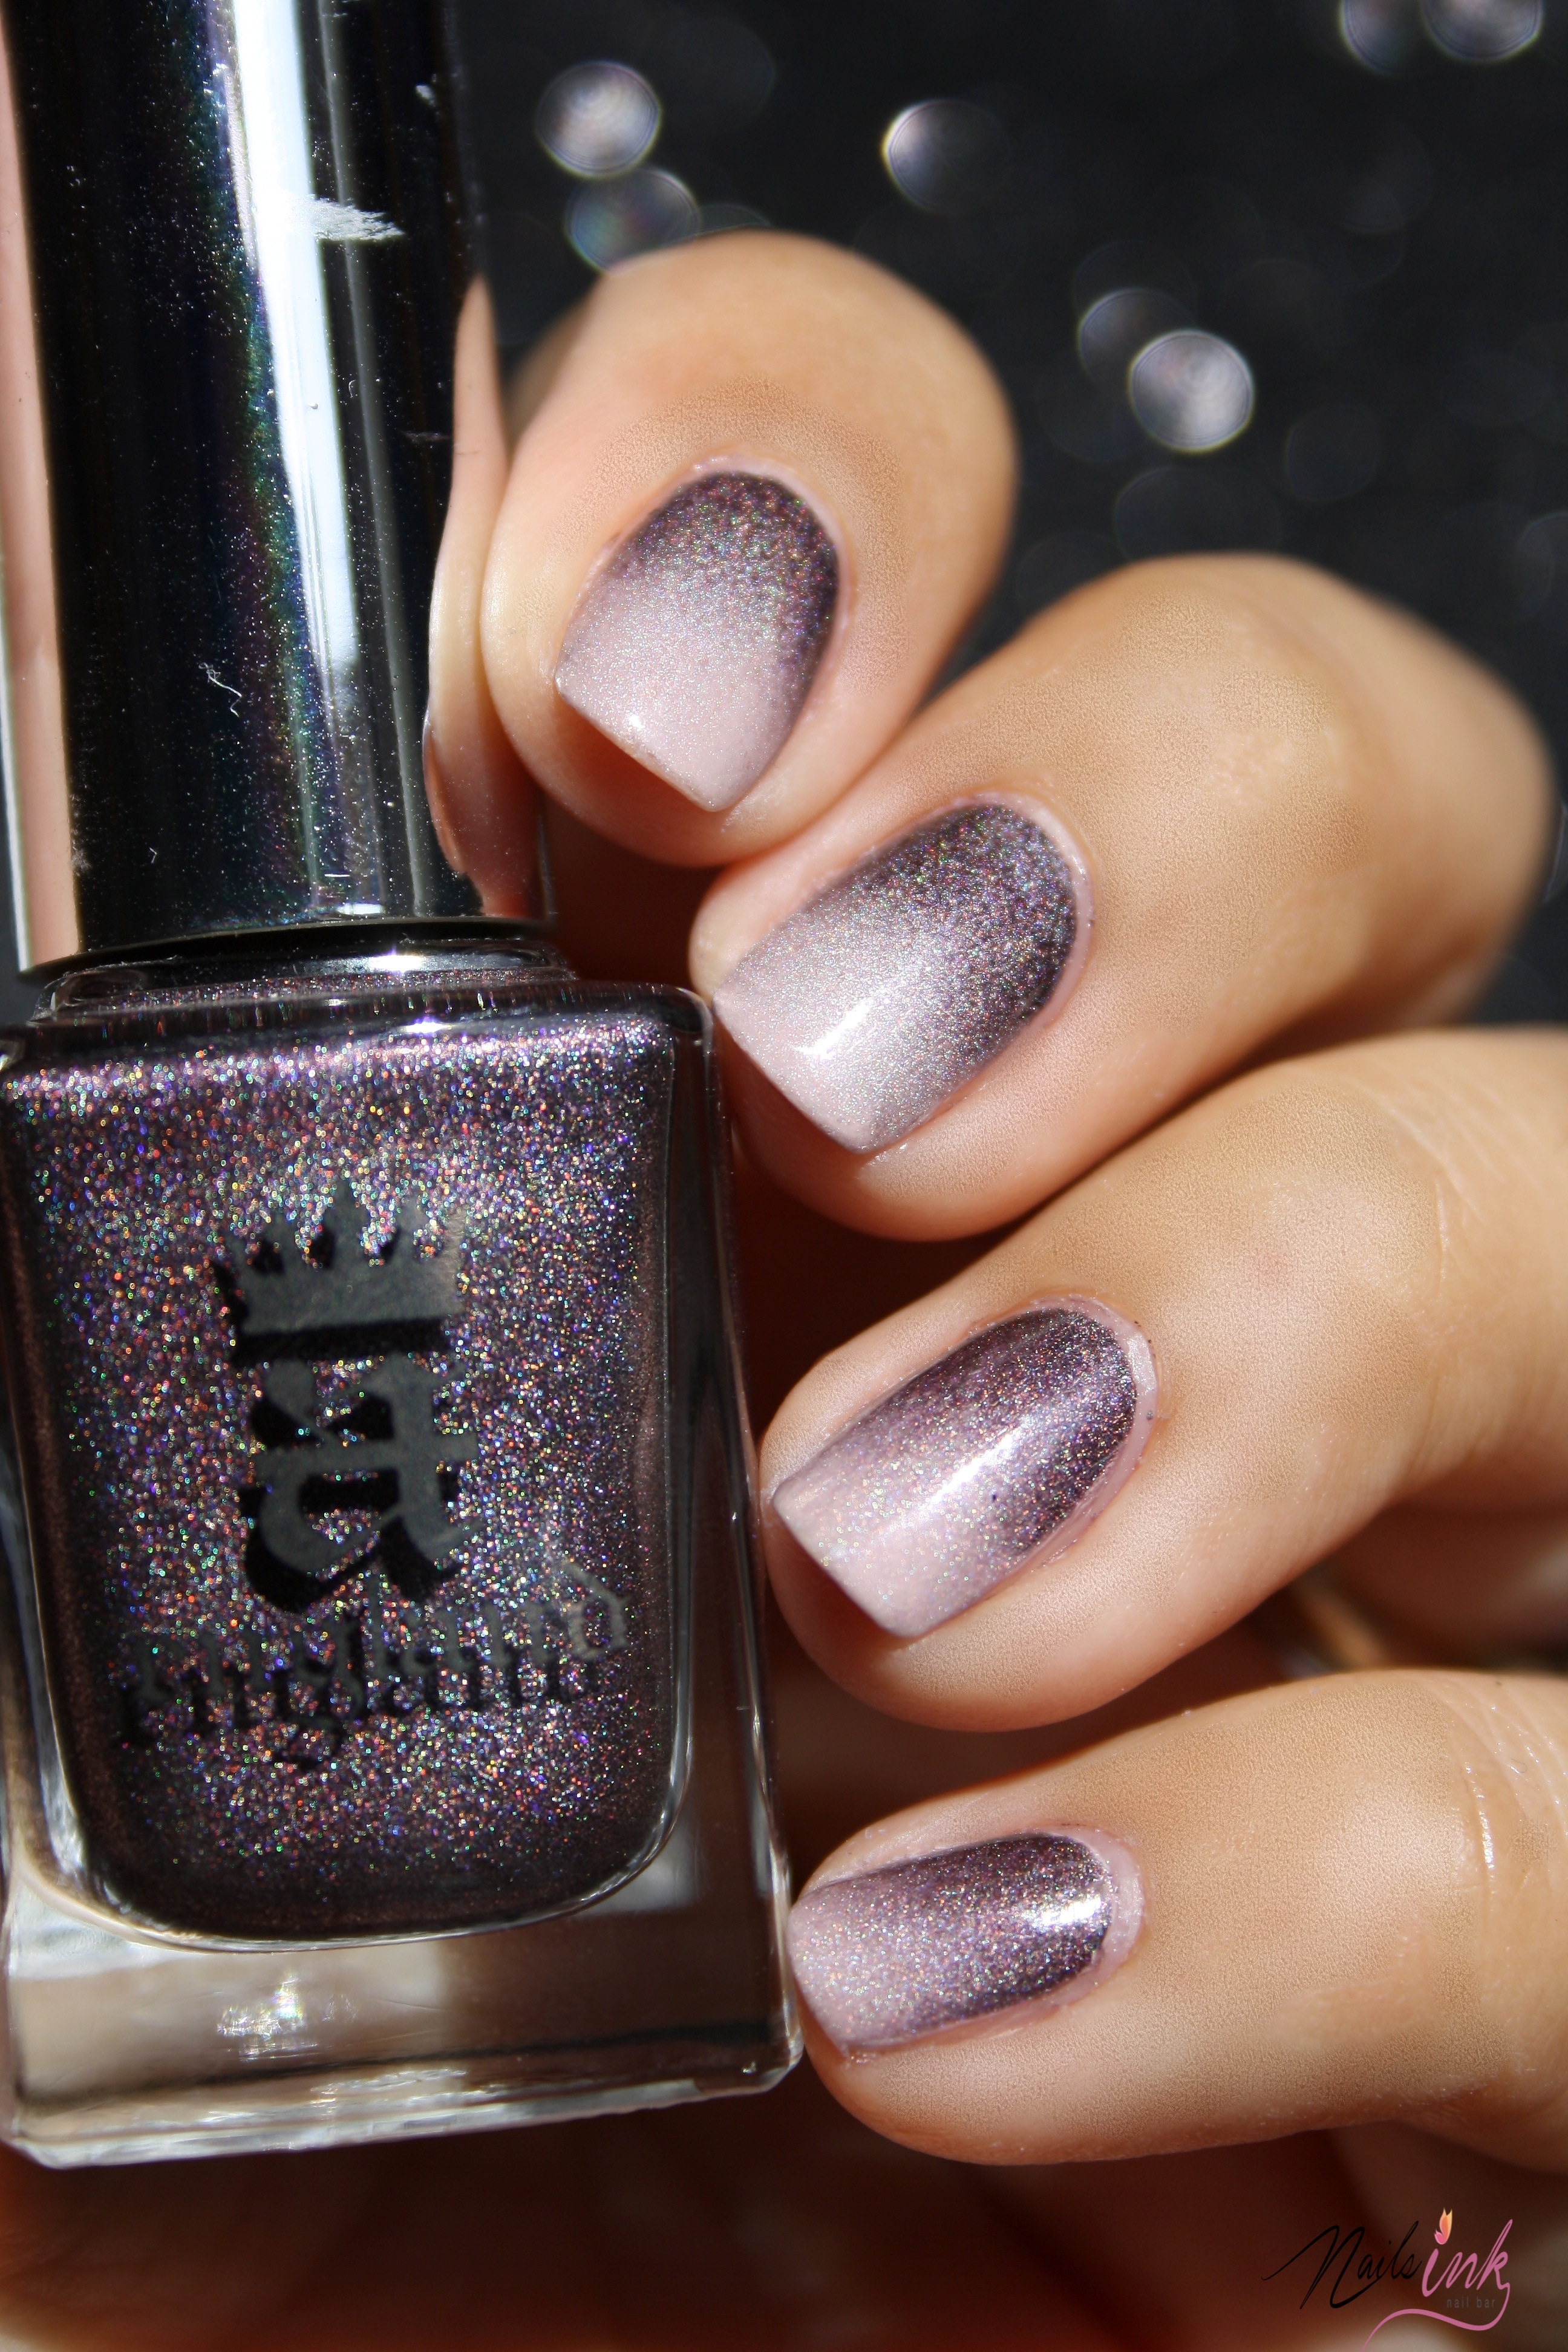 nail art automnale nail art by nails ink. Black Bedroom Furniture Sets. Home Design Ideas